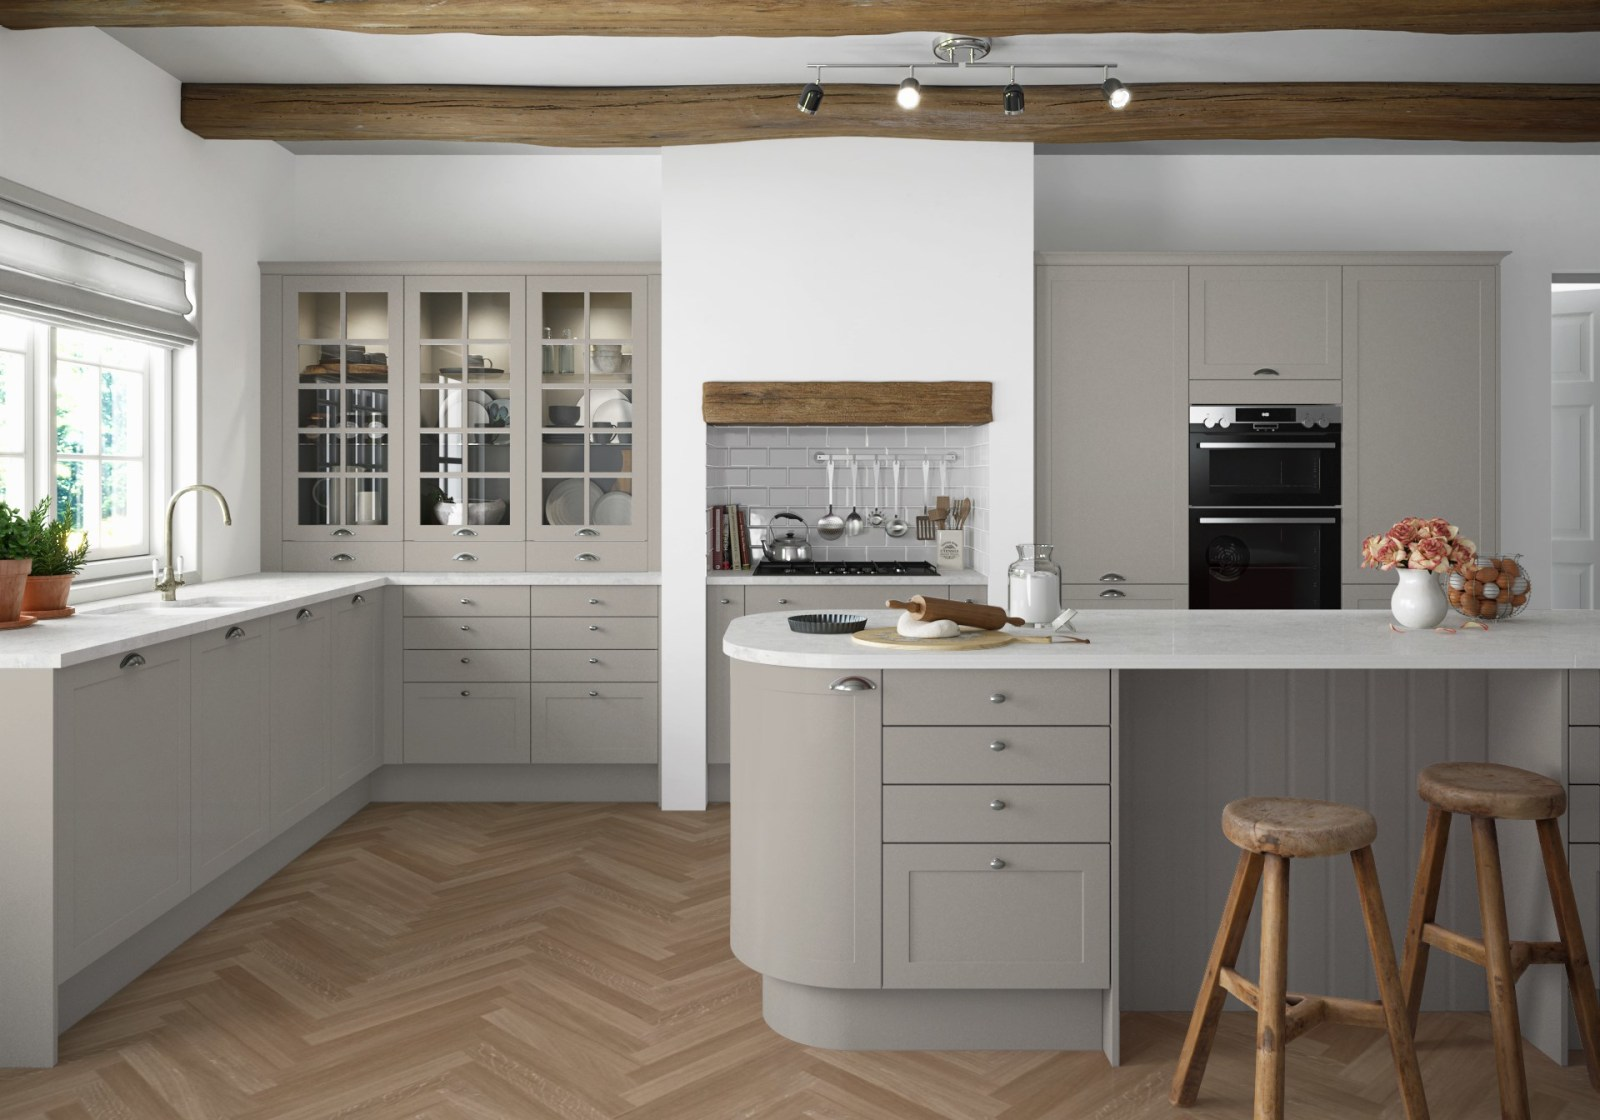 Dunham kitchen by Magnet. Smooth matt finish traditional or modern style available in over 20 colours.